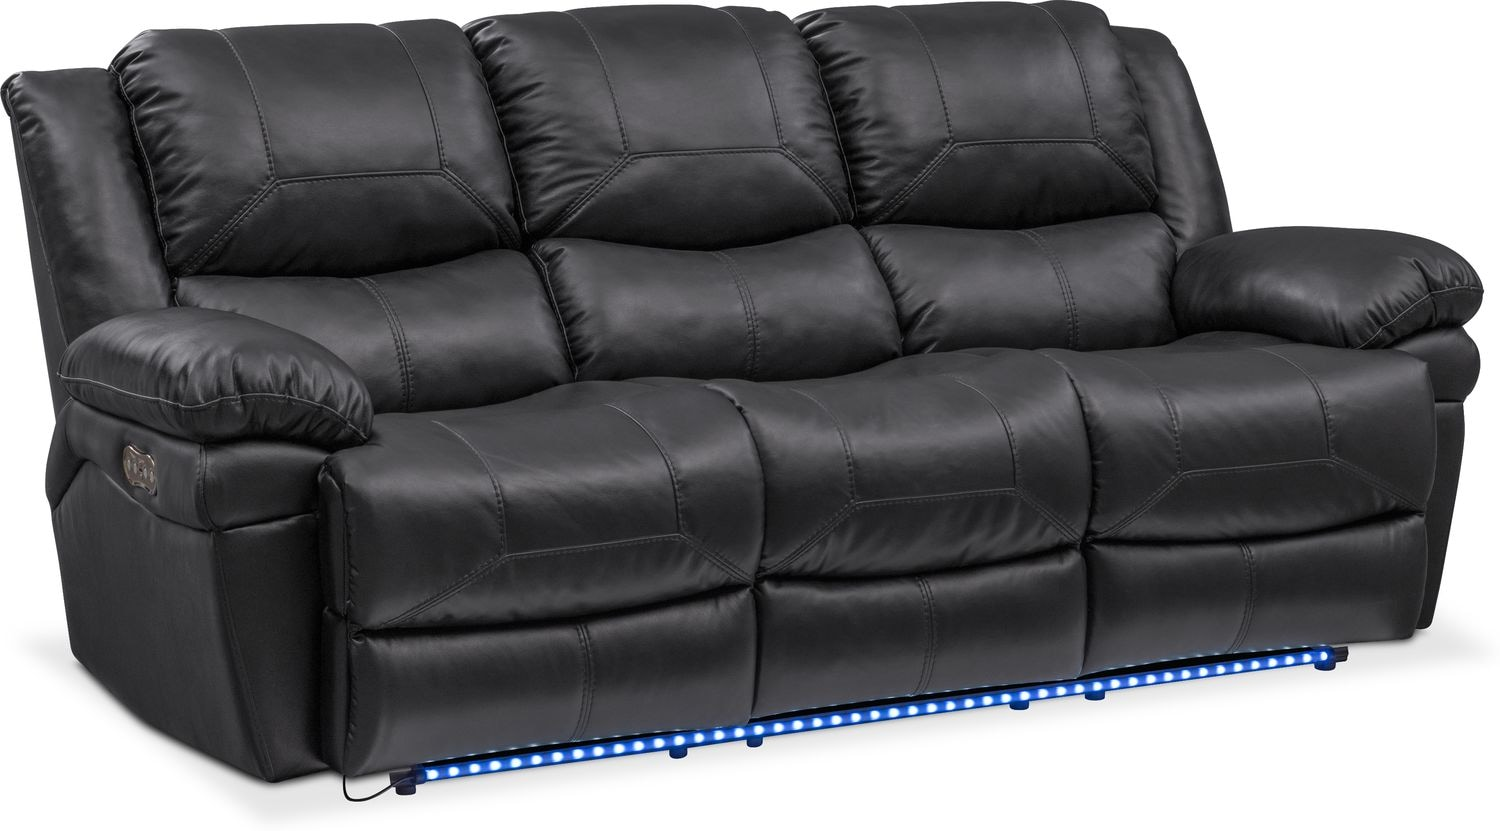 Sofa and recliner set black hover touch to zoom click to change image